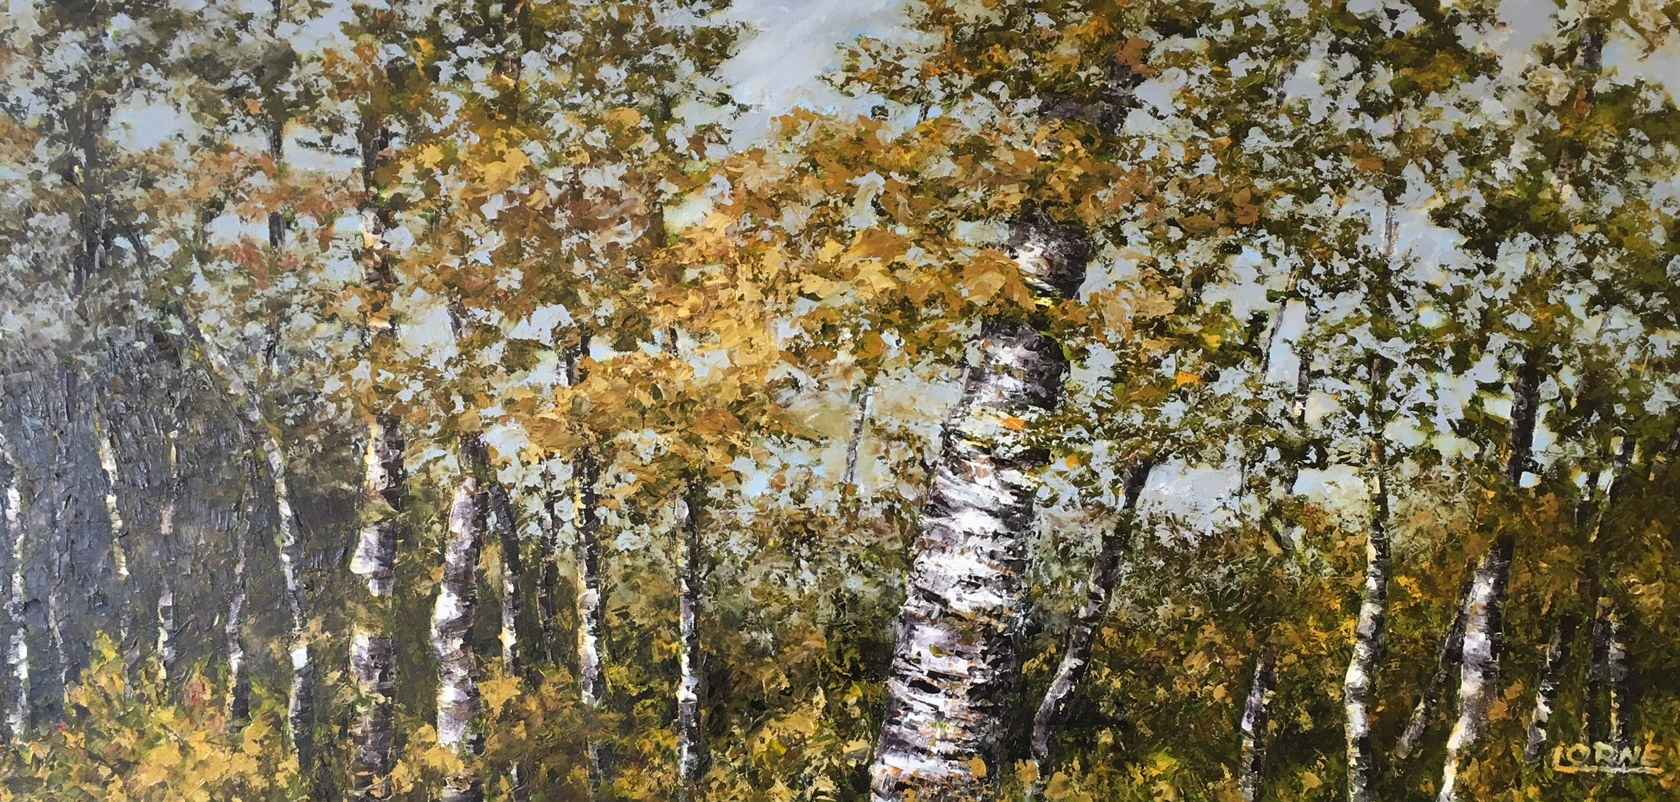 Rustling Birch Leaves by Mr. Lorne McDermott - Masterpiece Online